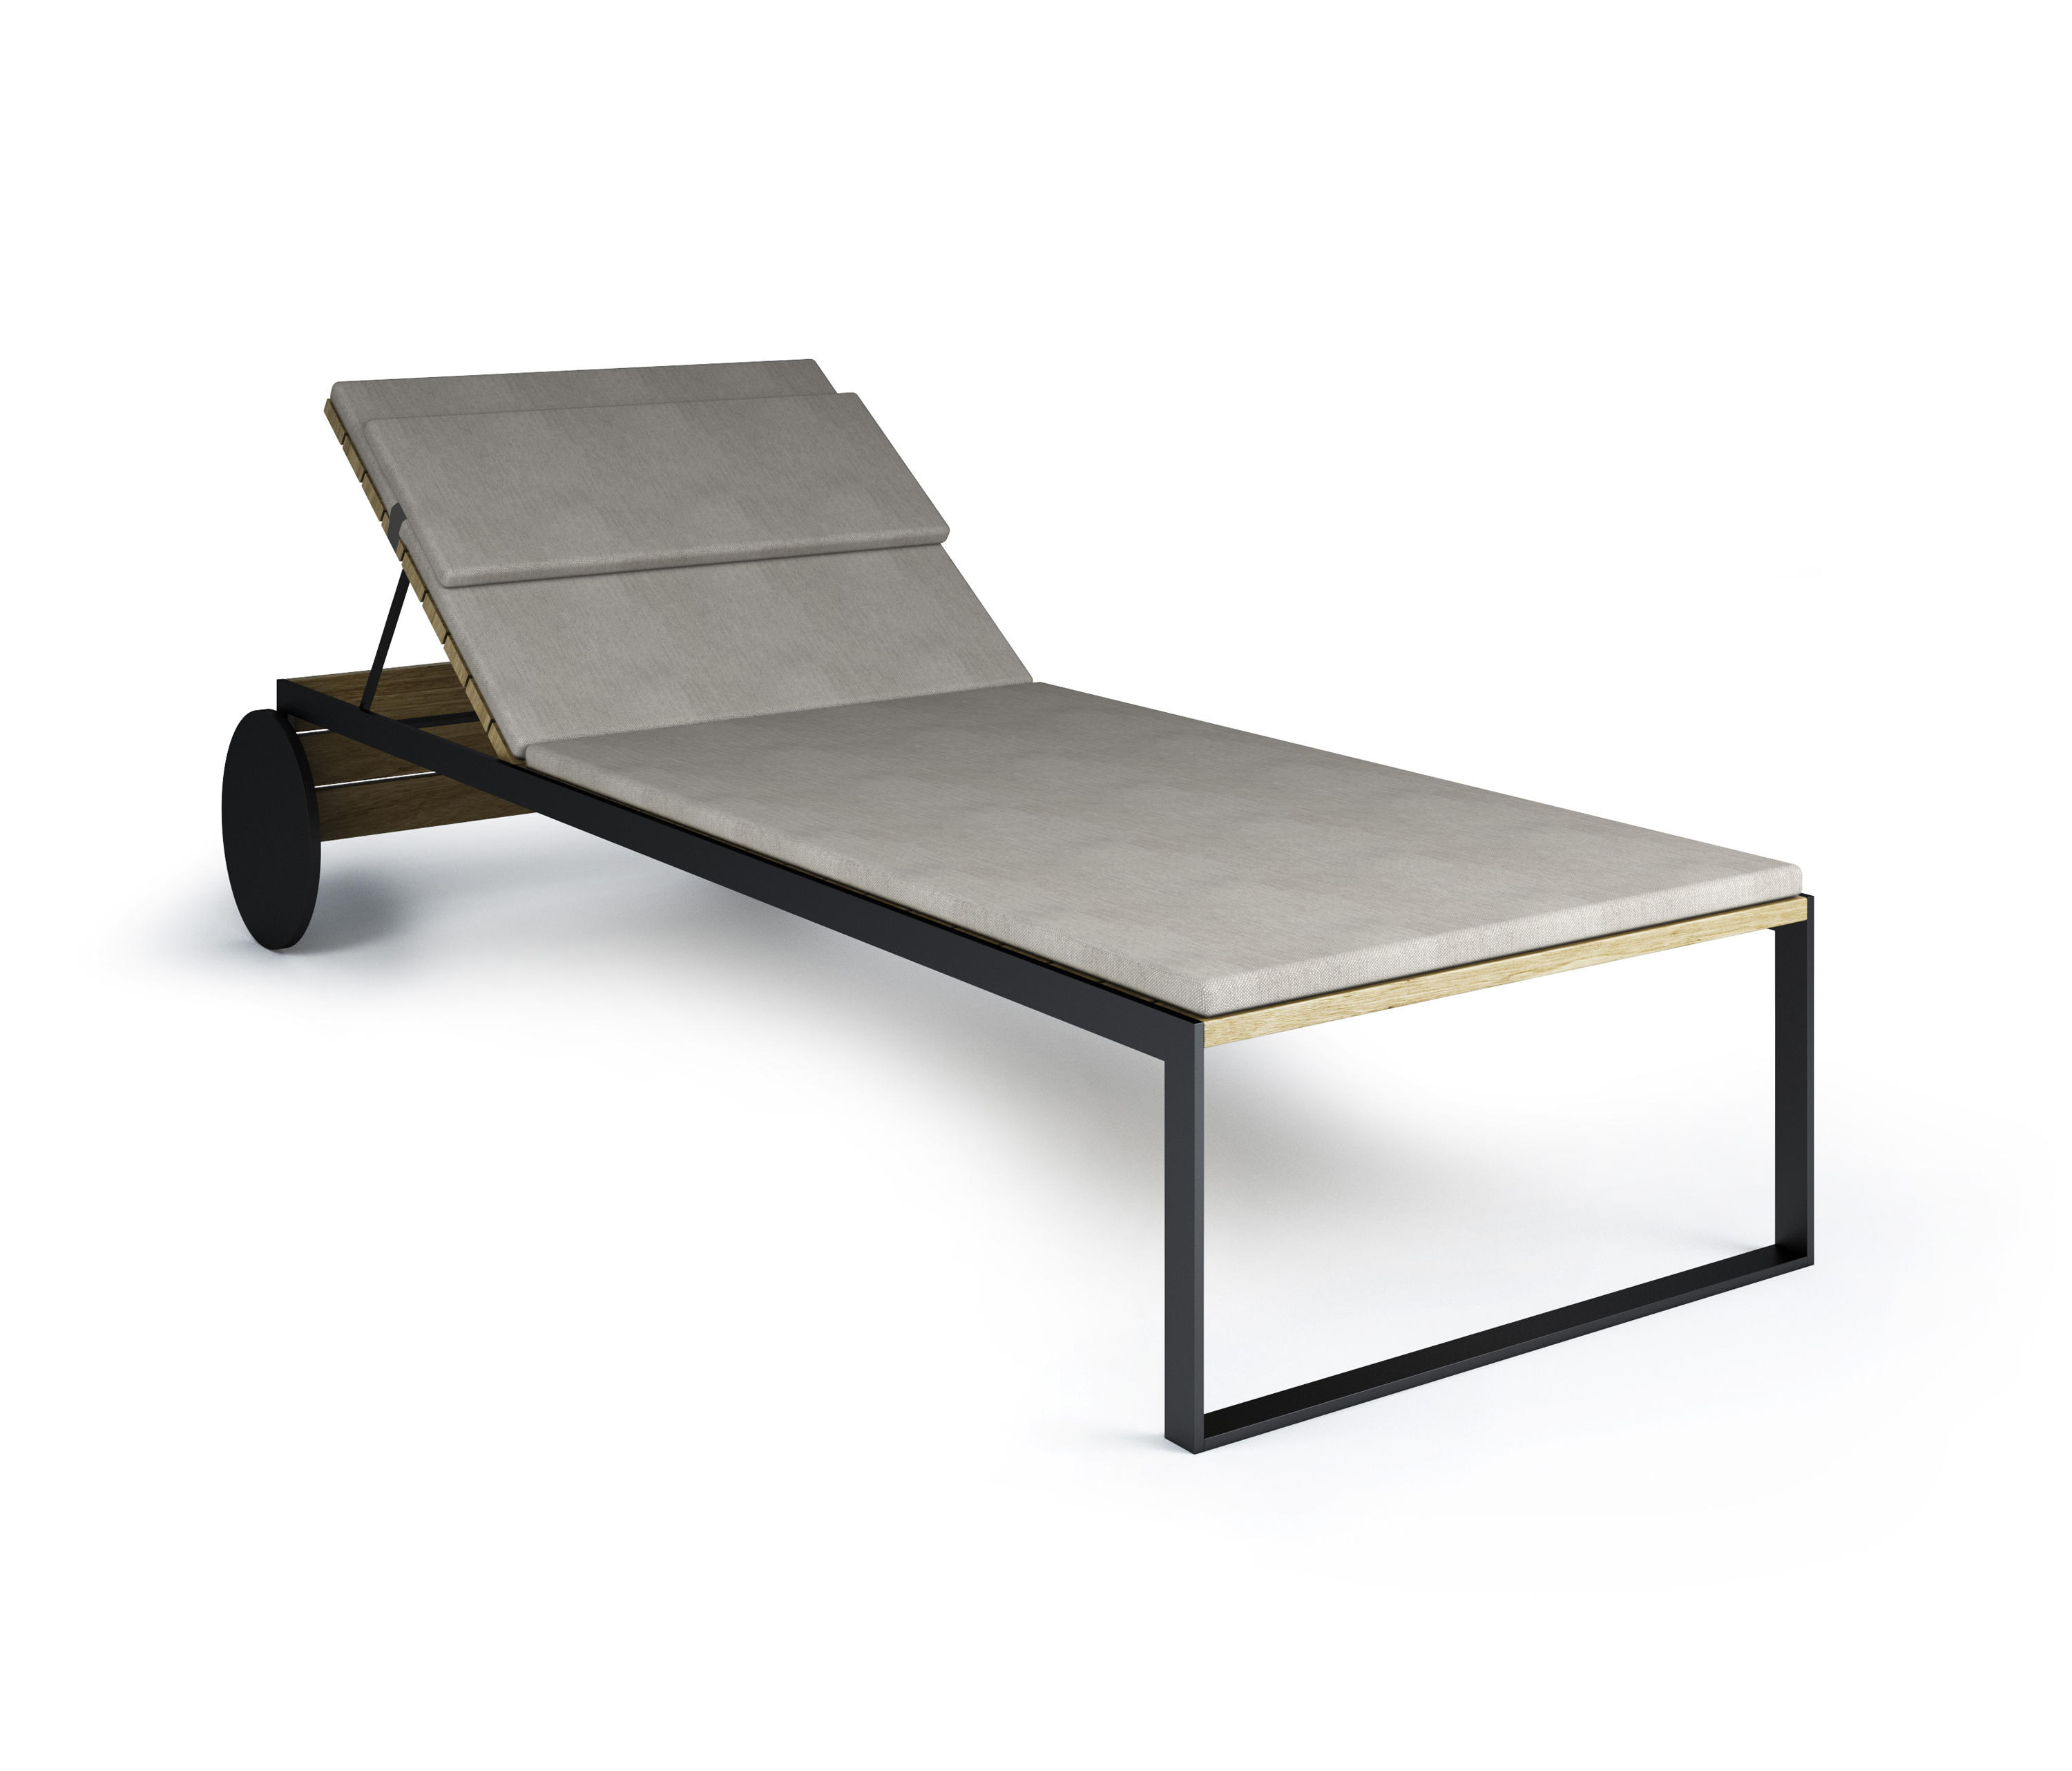 SPA LOUNGERS High quality designer SPA LOUNGERS